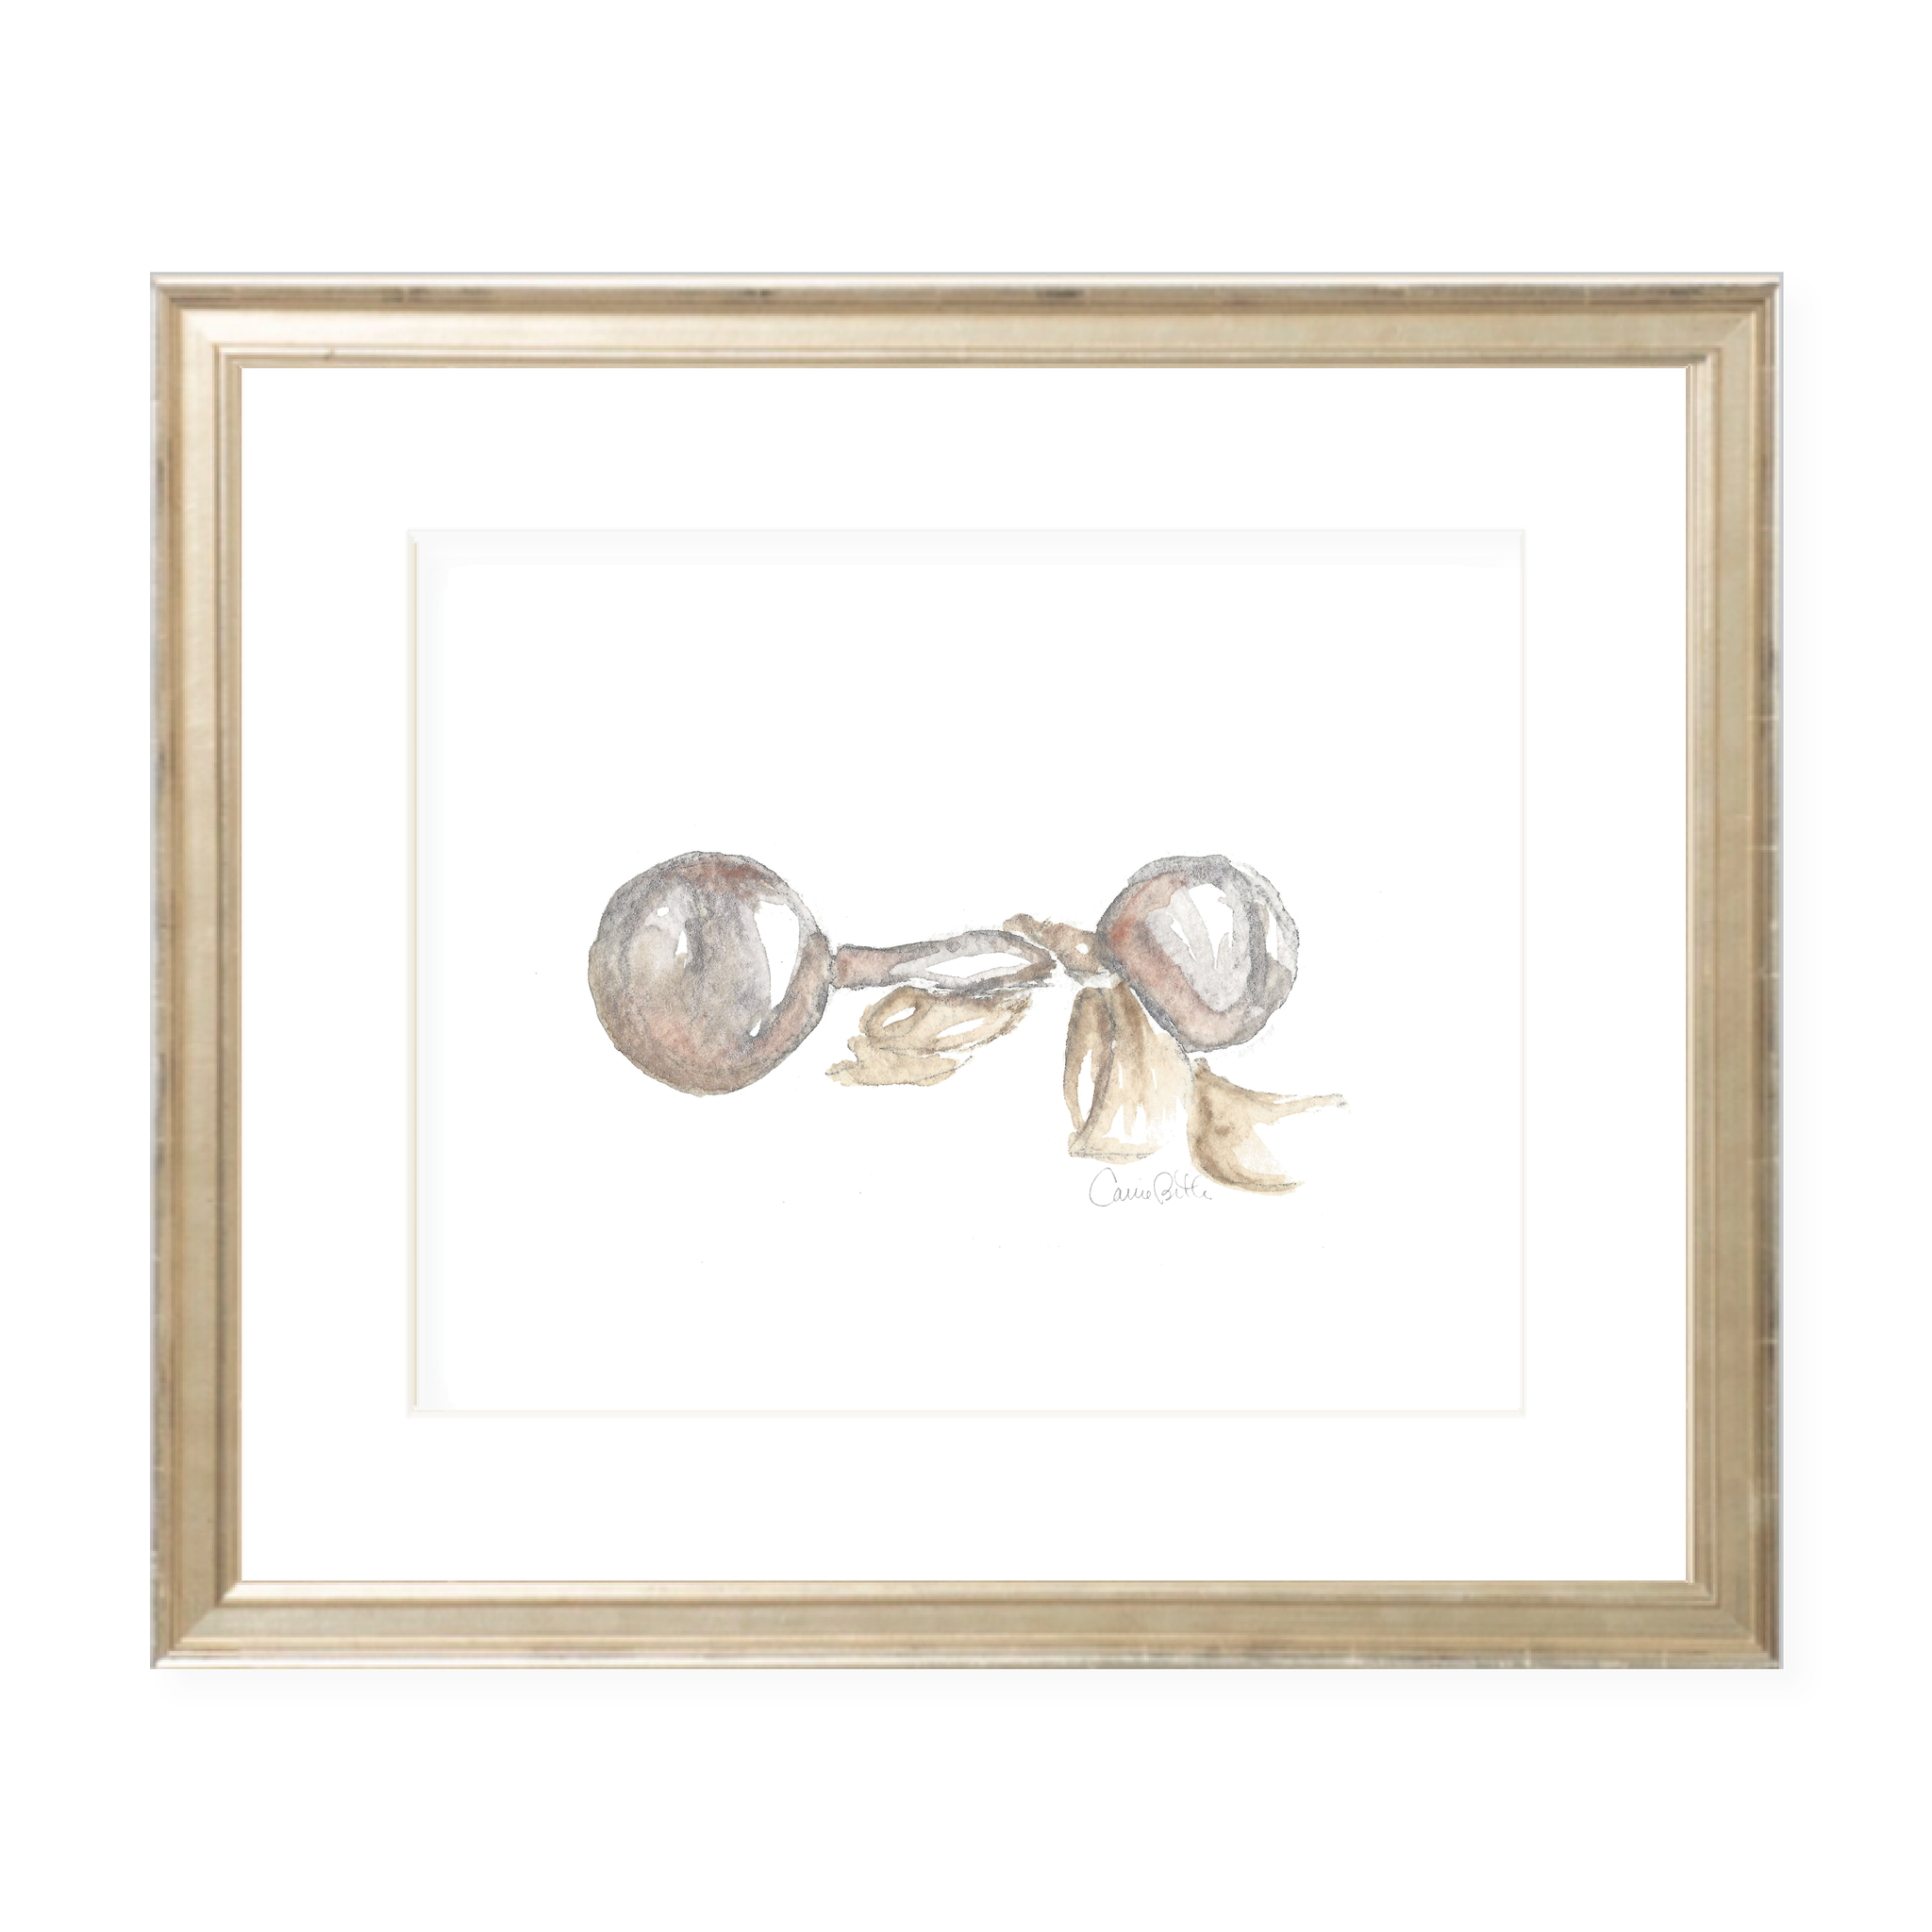 Carlson Rattle with Neutral Sash Watercolor Print